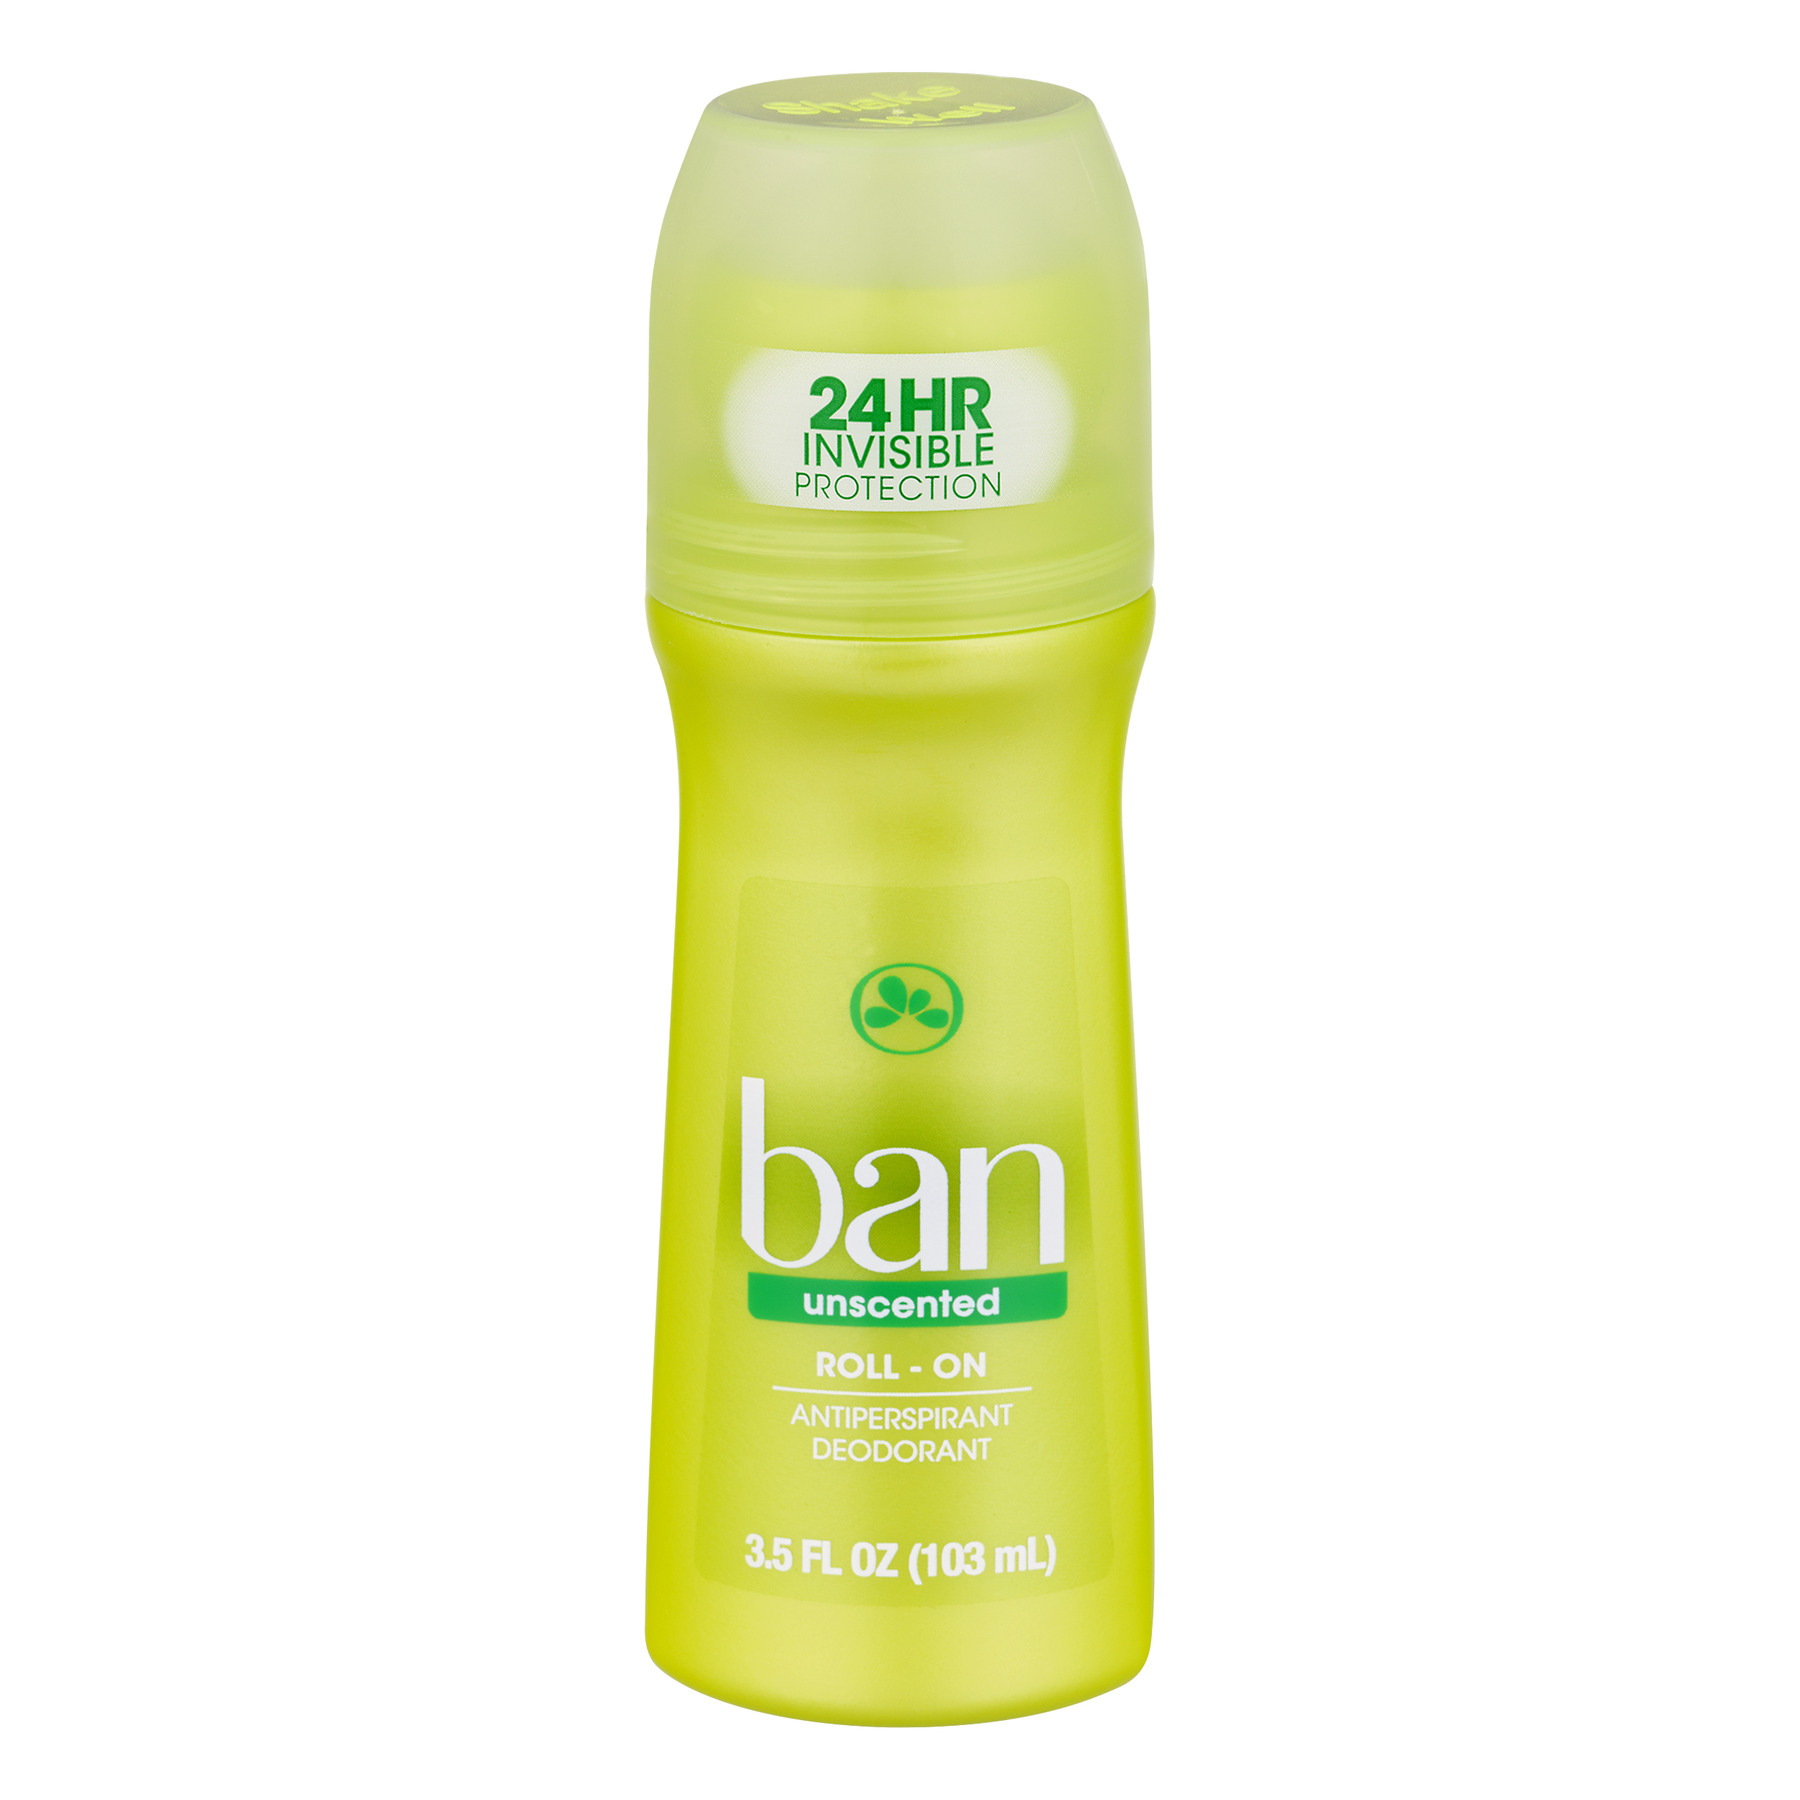 Ban Unscented Roll-On Antiperspirant Deoderant, 3.5 Fl Oz